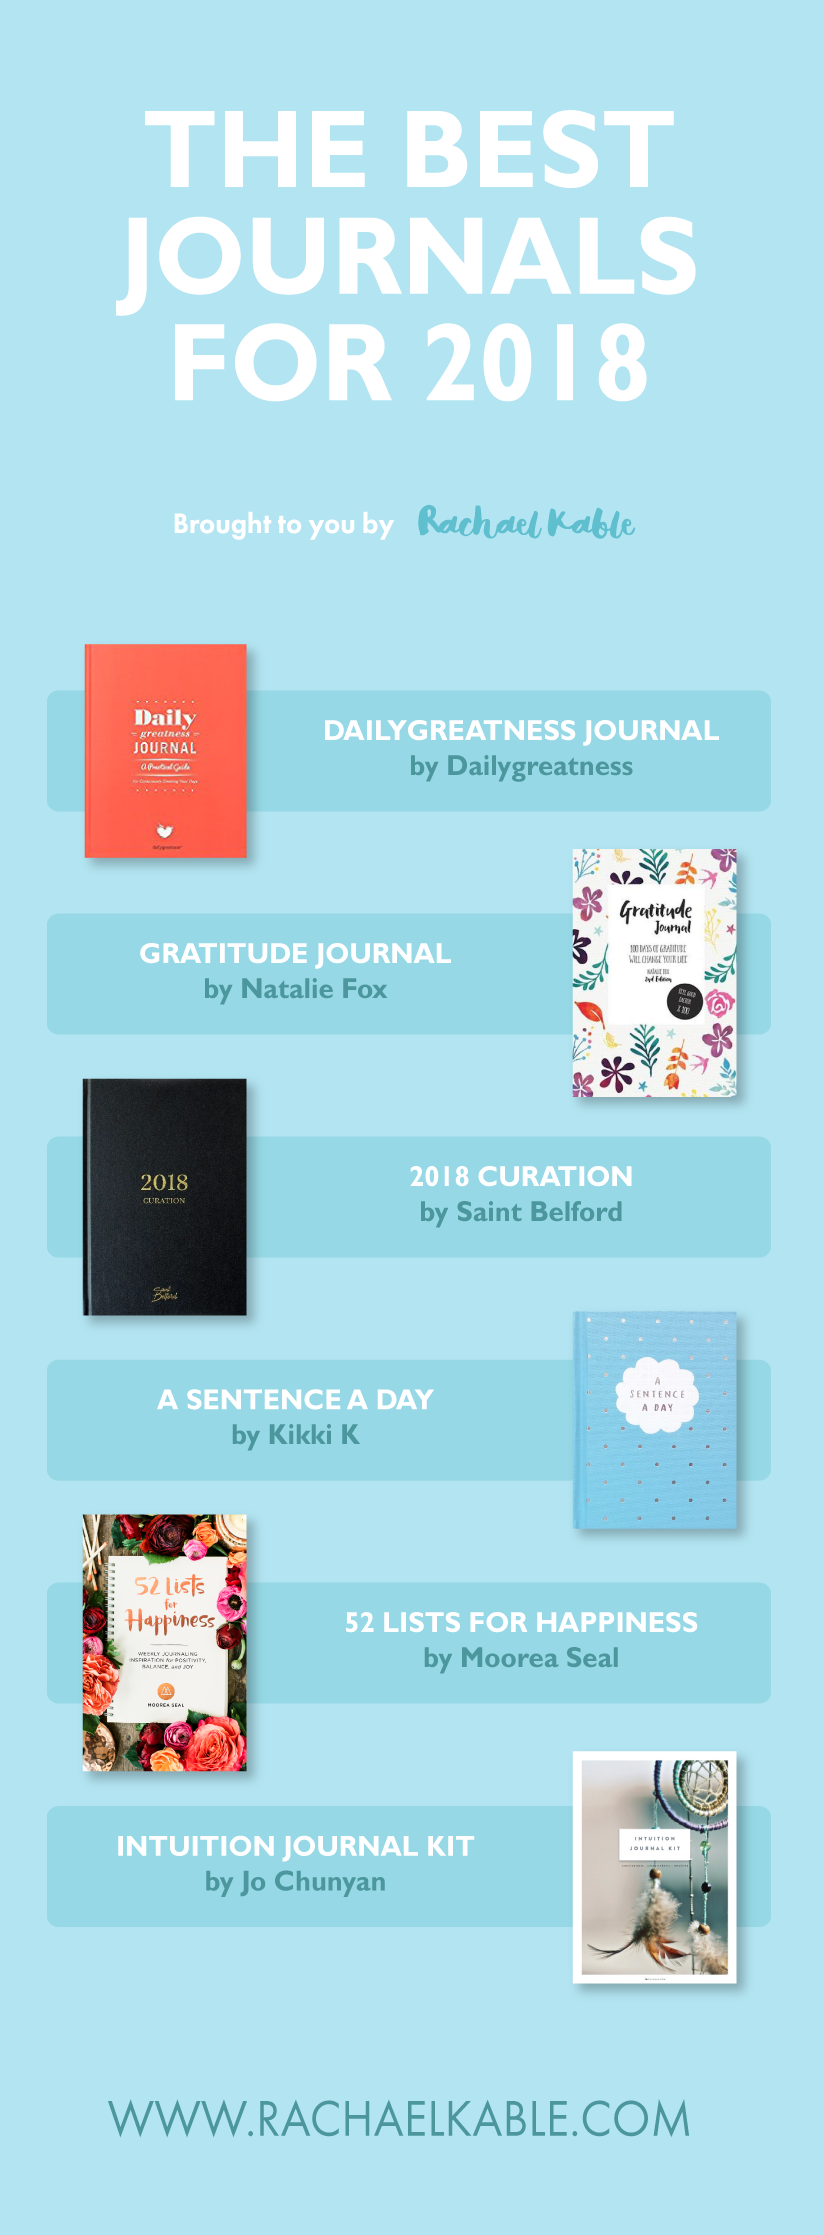 Best Journals for 2018